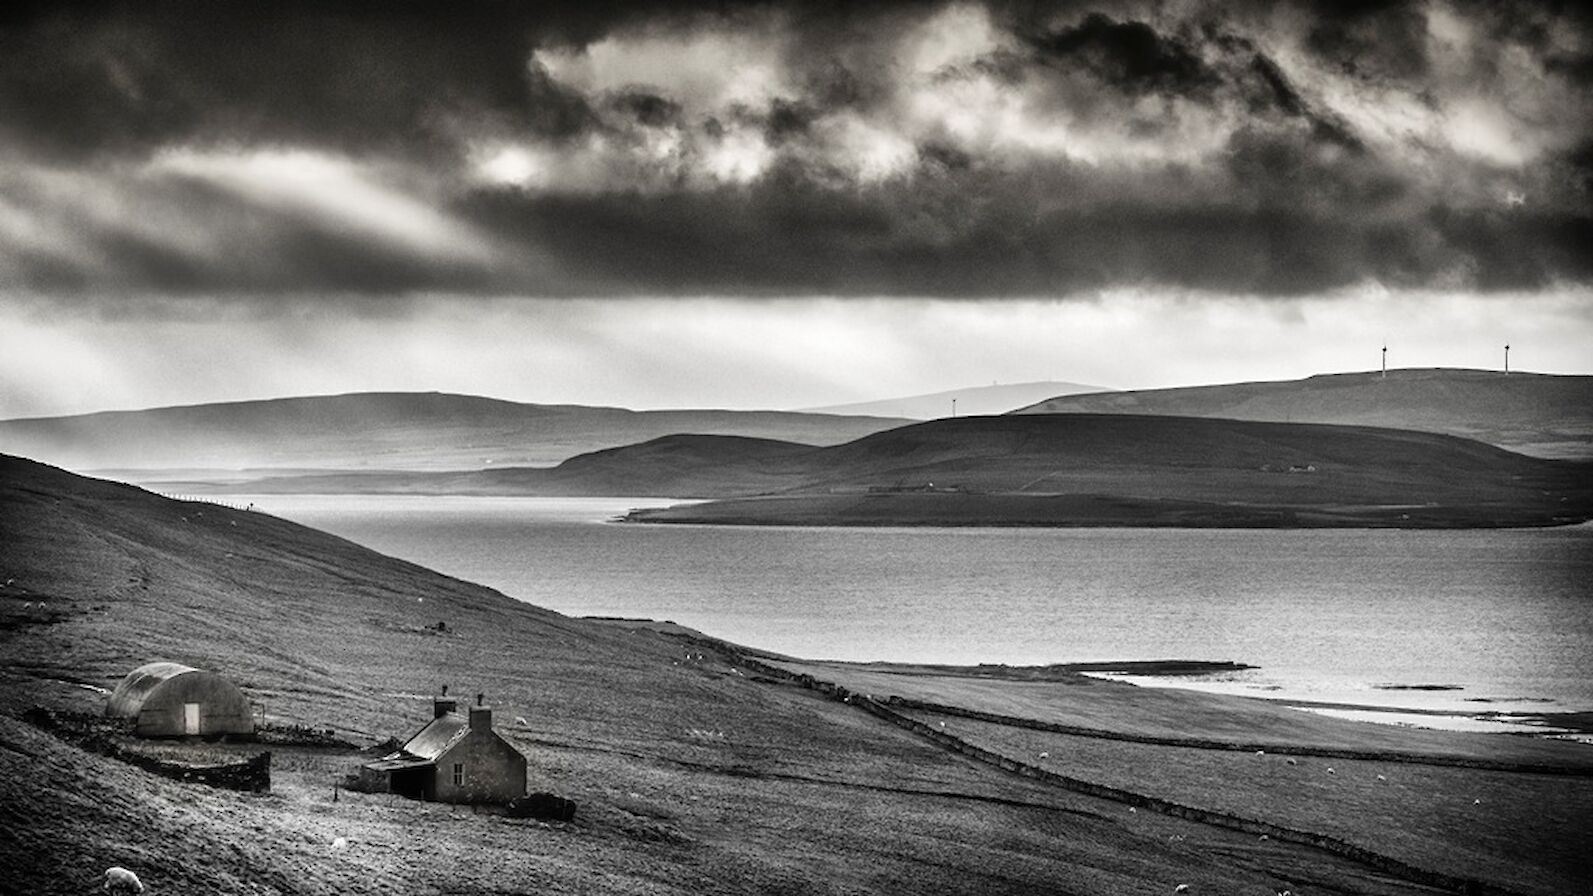 The view from Rousay - image by James Grieve